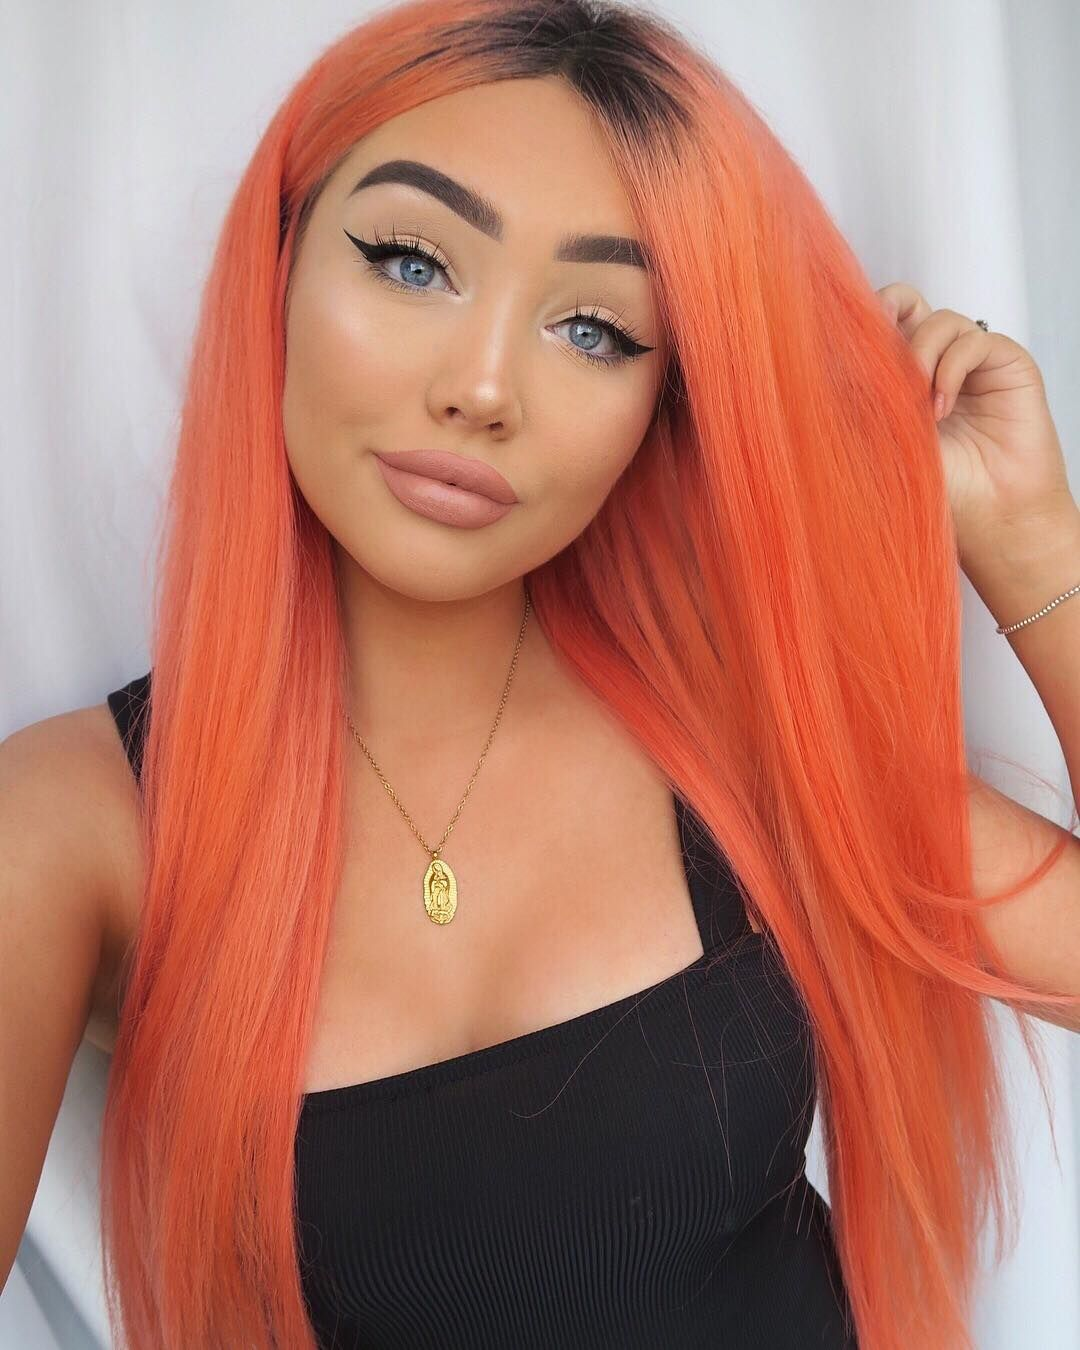 """Vegan + Cruelty-Free Color on Instagram: """"It doesn't get much more fall than orange hair! 🍁@ohmygeeee got the perfect shade of orange by diluting Sunset Orange! 🍊 ⠀⠀⠀⠀⠀⠀⠀⠀⠀…"""""""